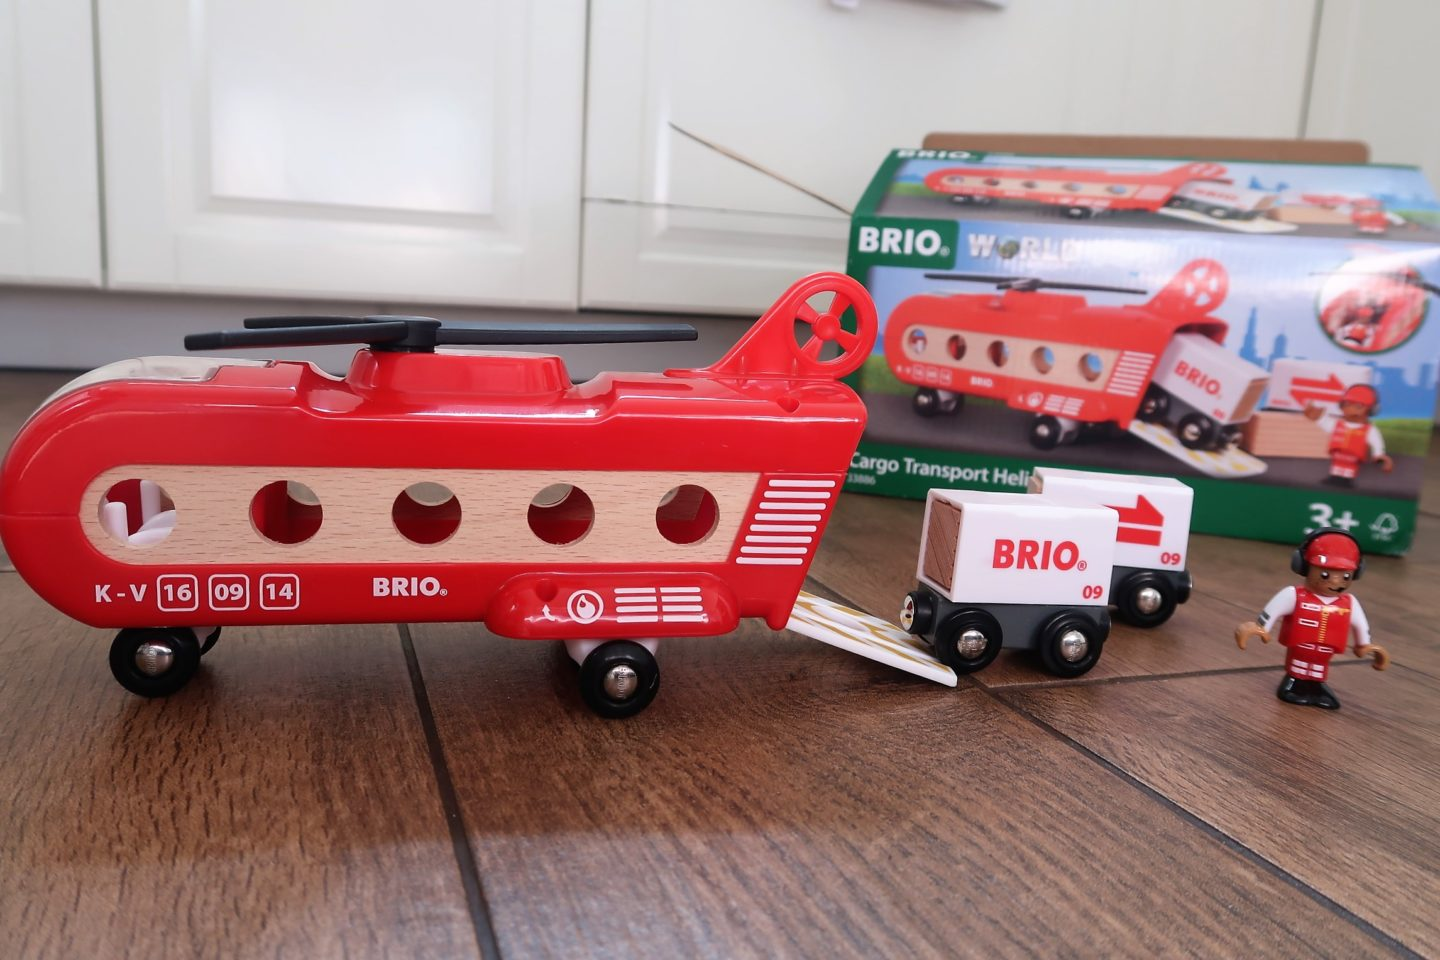 Brio Cargo Transport Helicopter (33886) Review | Ad